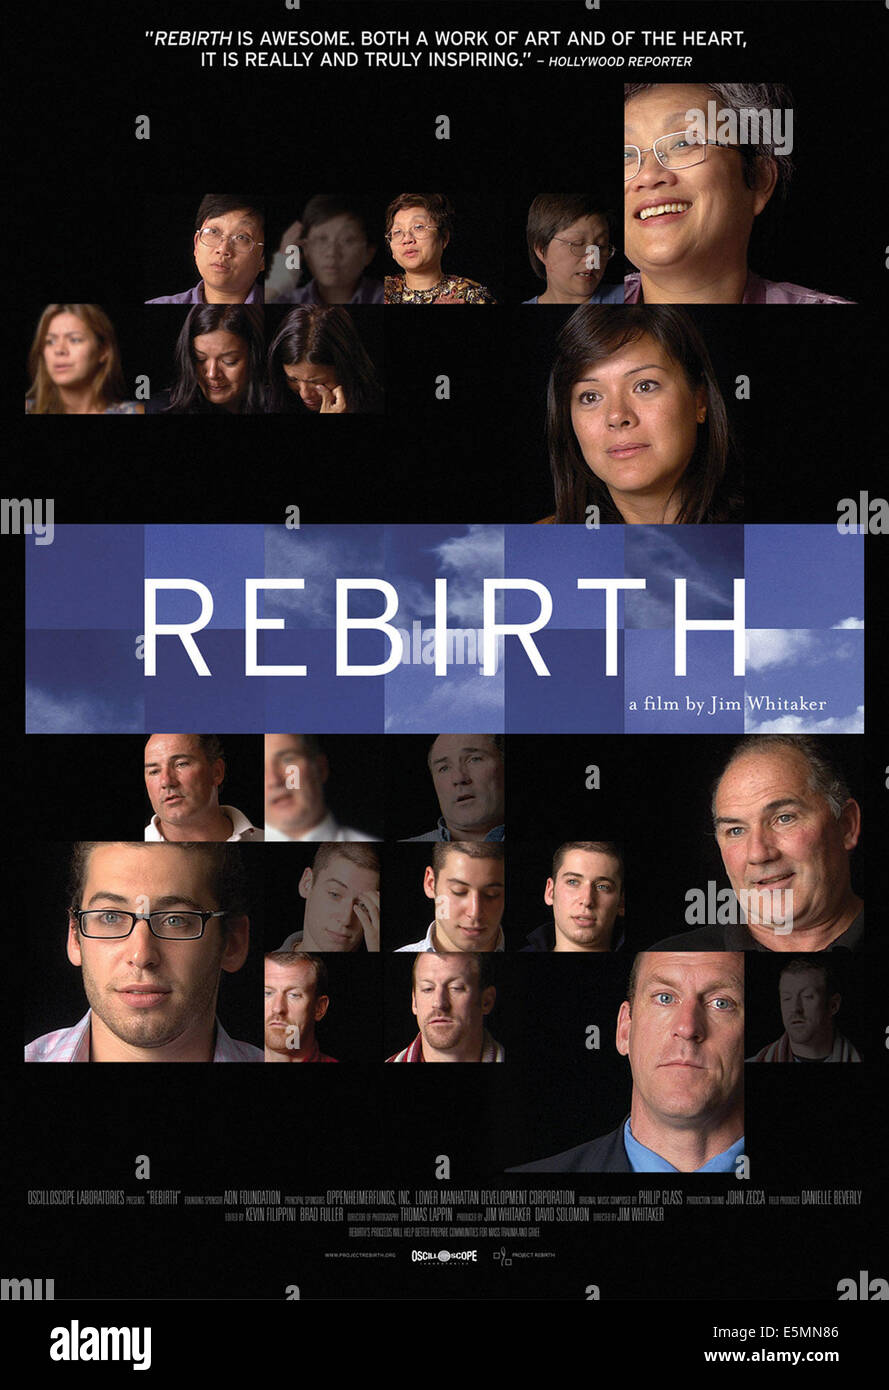 REBIRTH, US poster art, 2011, ©Oscilloscope Pictures/courtesy Everett Collection - Stock Image